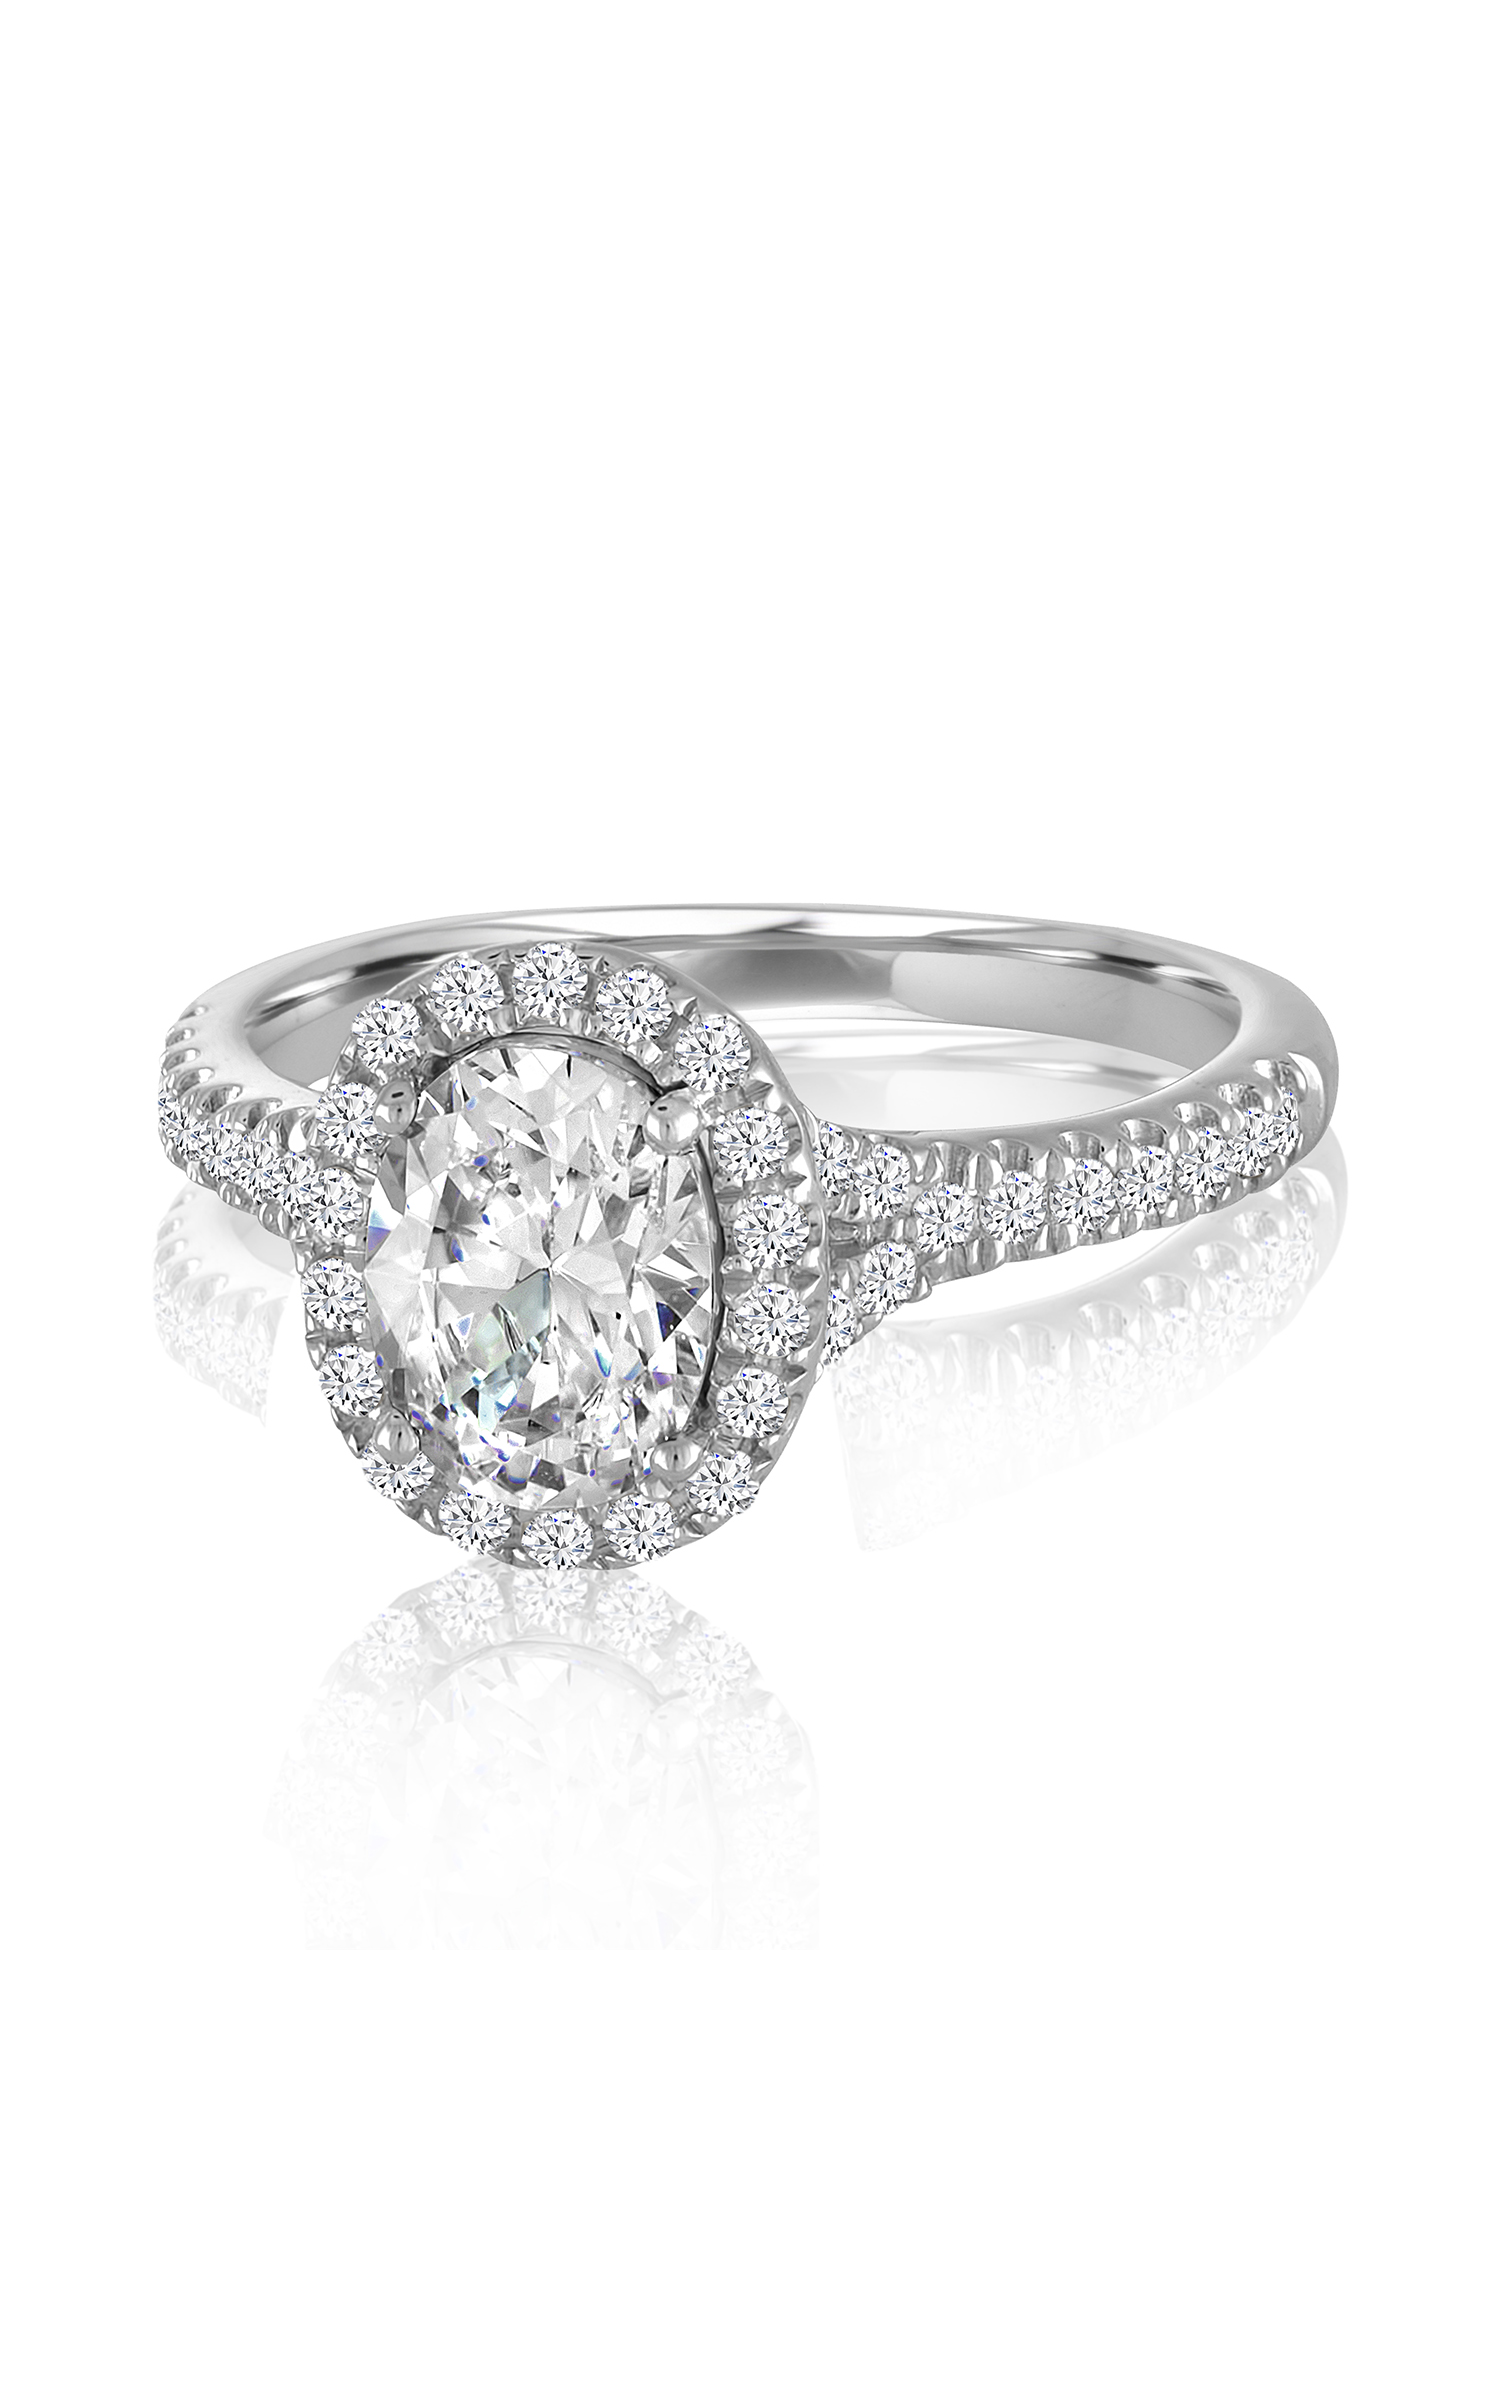 Imagine Bridal Engagement Rings 64216d1 5 Product Image: Were Find Wedding Rings At Websimilar.org